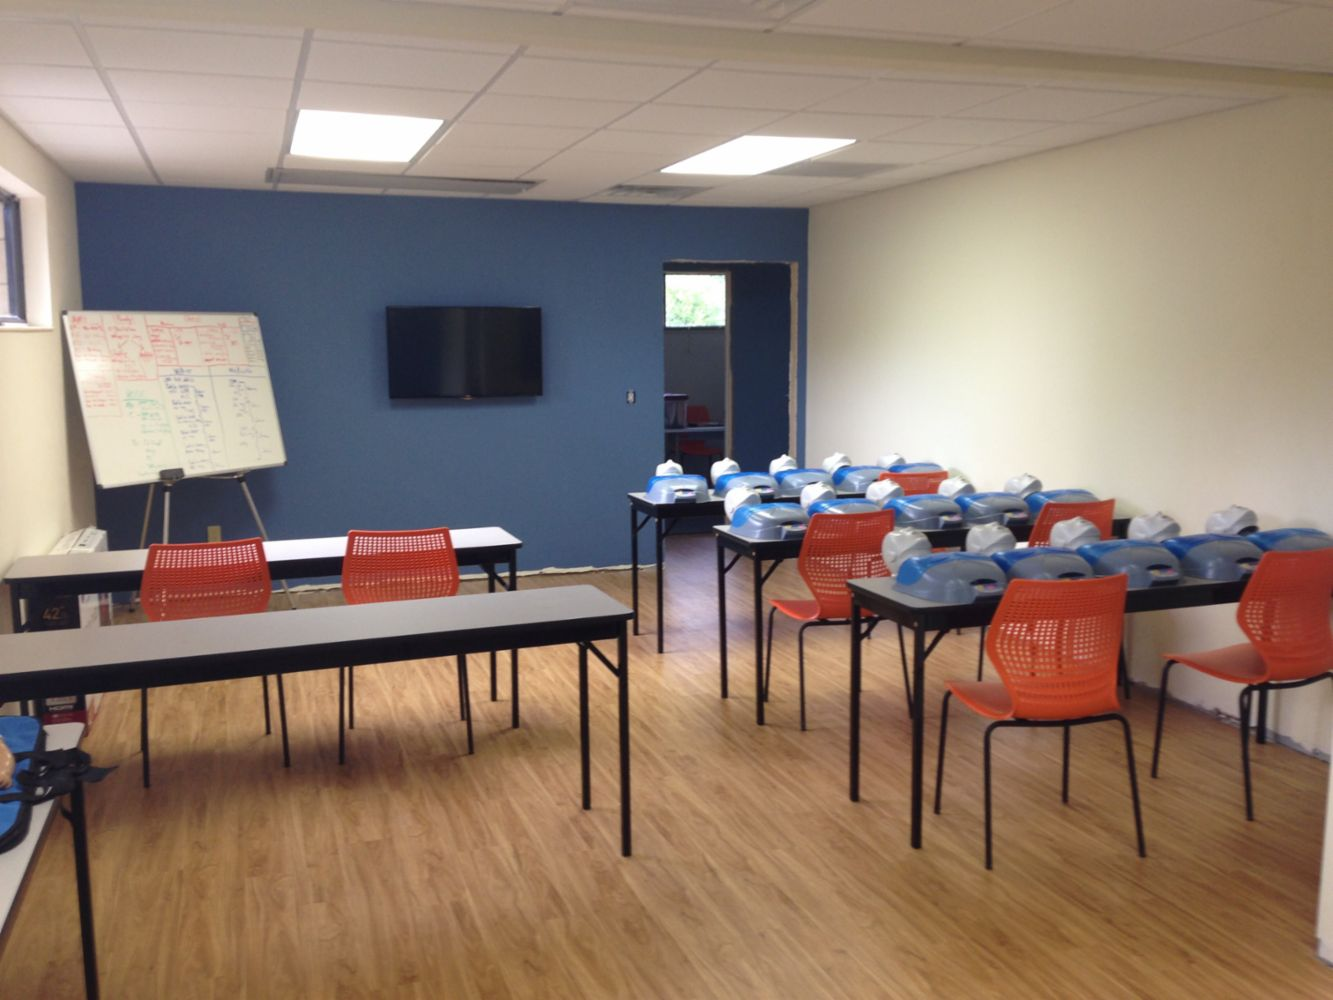 Bls Cpraed First Aid And Cna Prep Courses In Gainesville Fl